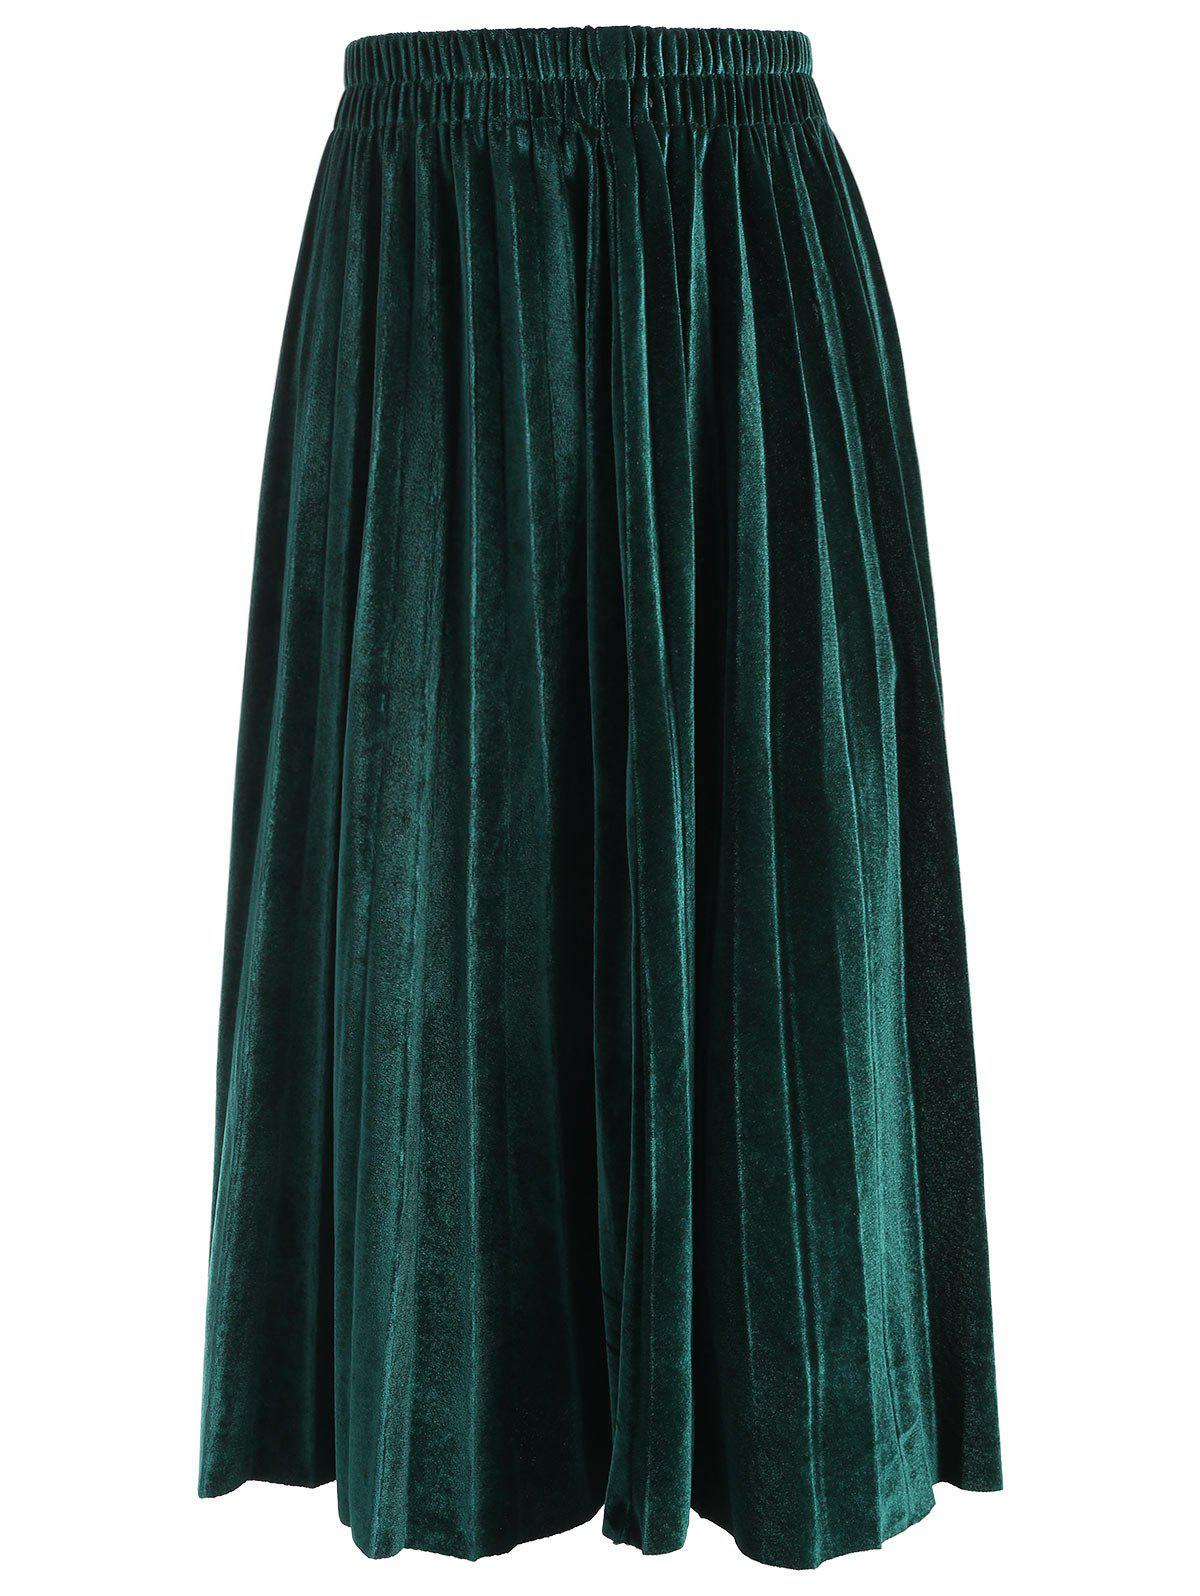 Elastic Waisted Plus Size Velvet Skirt - BLACKISH GREEN 6XL